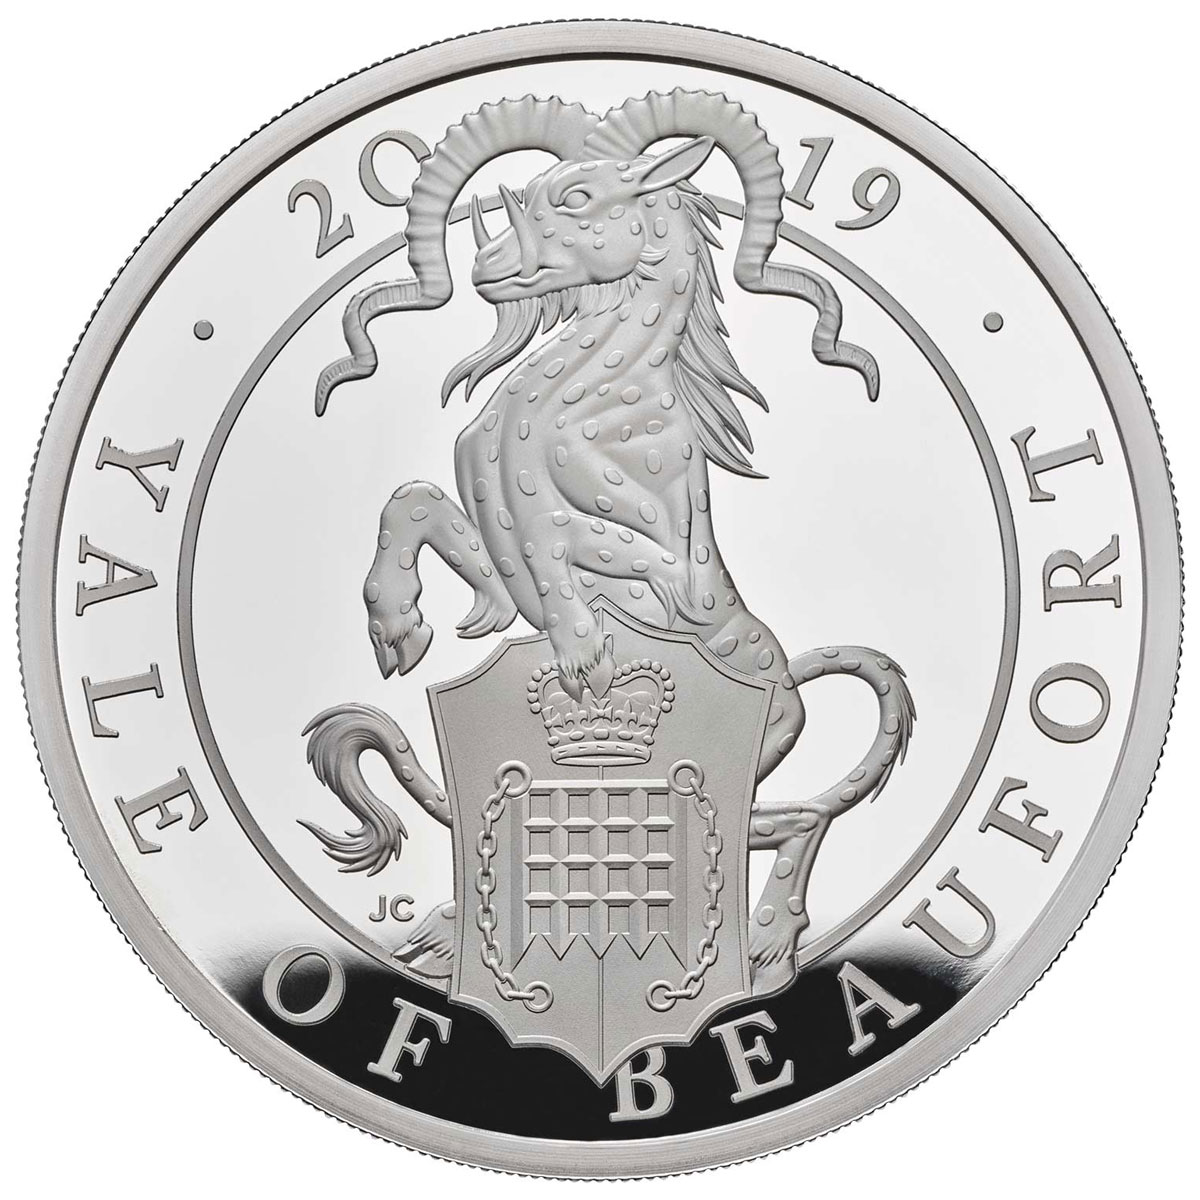 2019 Great Britain 1 oz Silver Queen's Beasts - The Yale of Beaufort Proof £2 Coin GEM Proof OGP